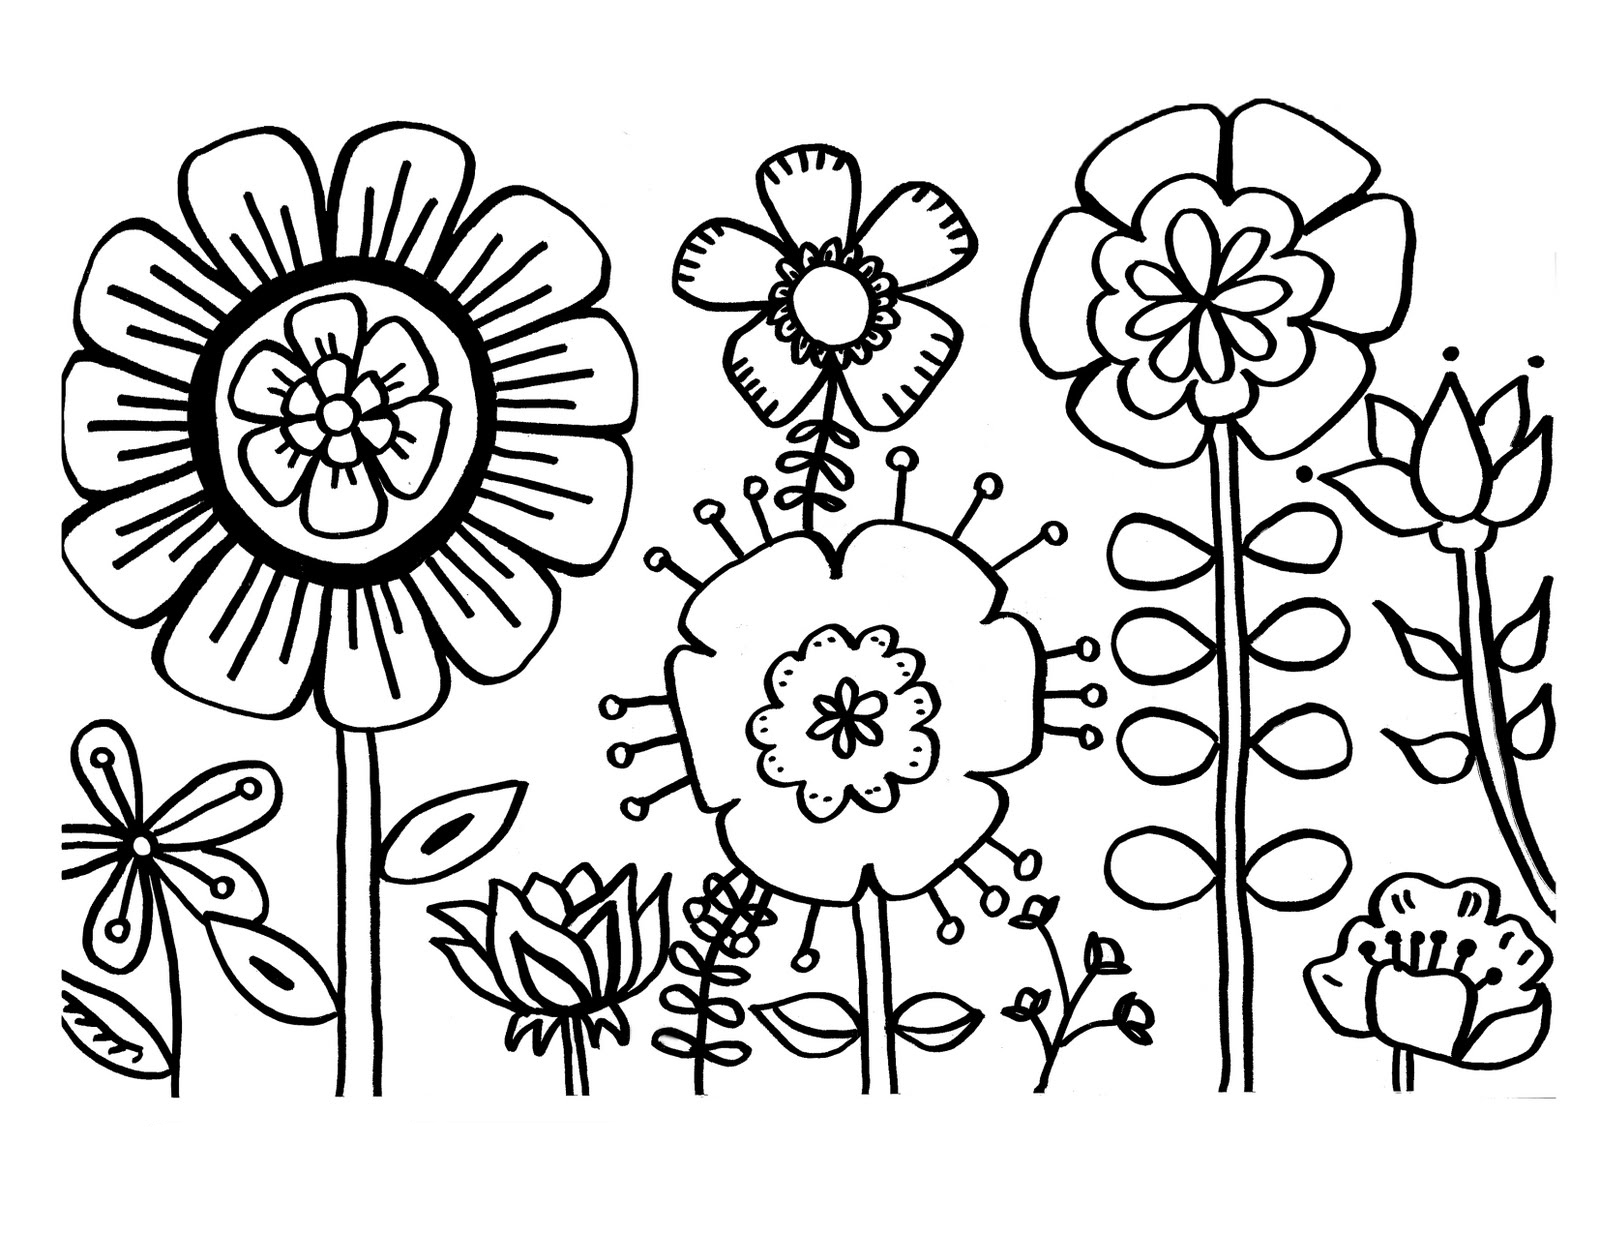 colouring flowers free printable hibiscus coloring pages for kids colouring flowers 1 1